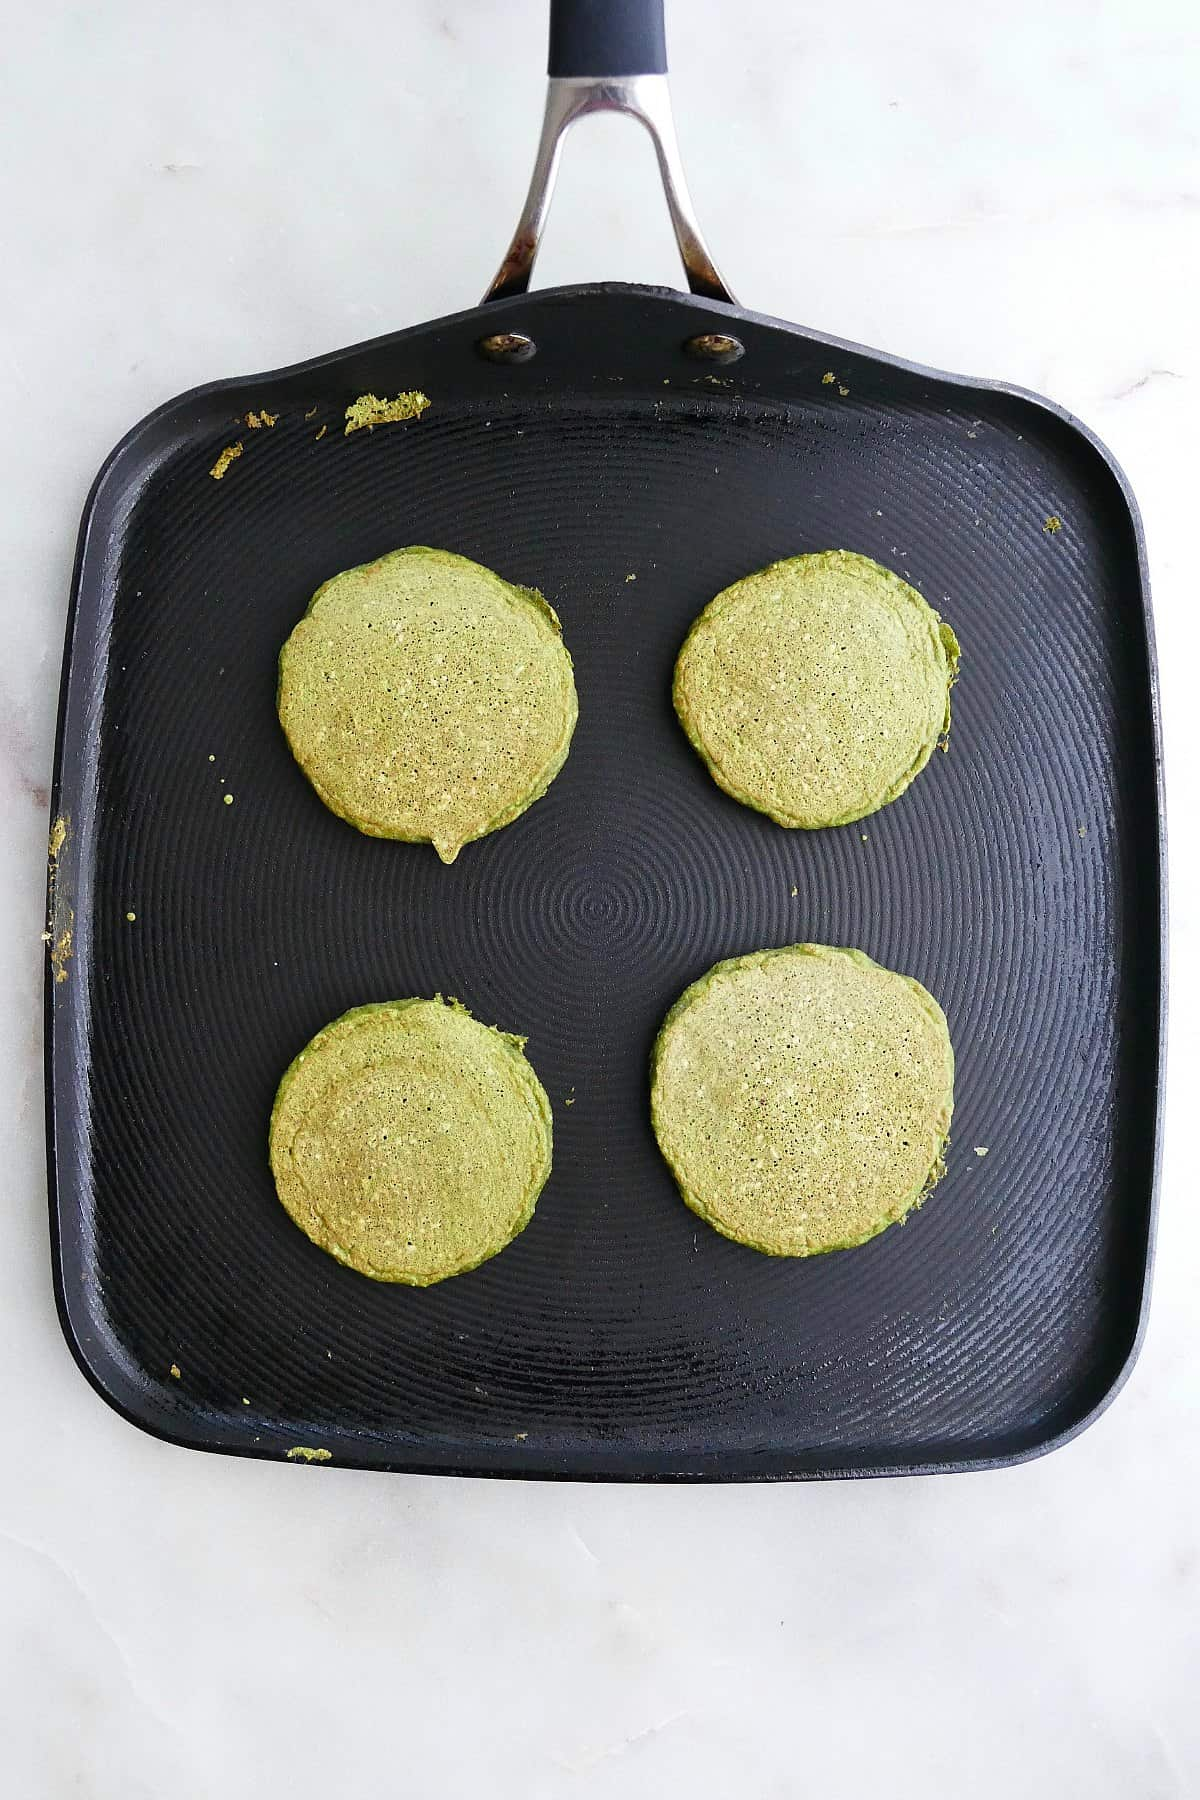 four spinach pancakes on a skillet on a counter